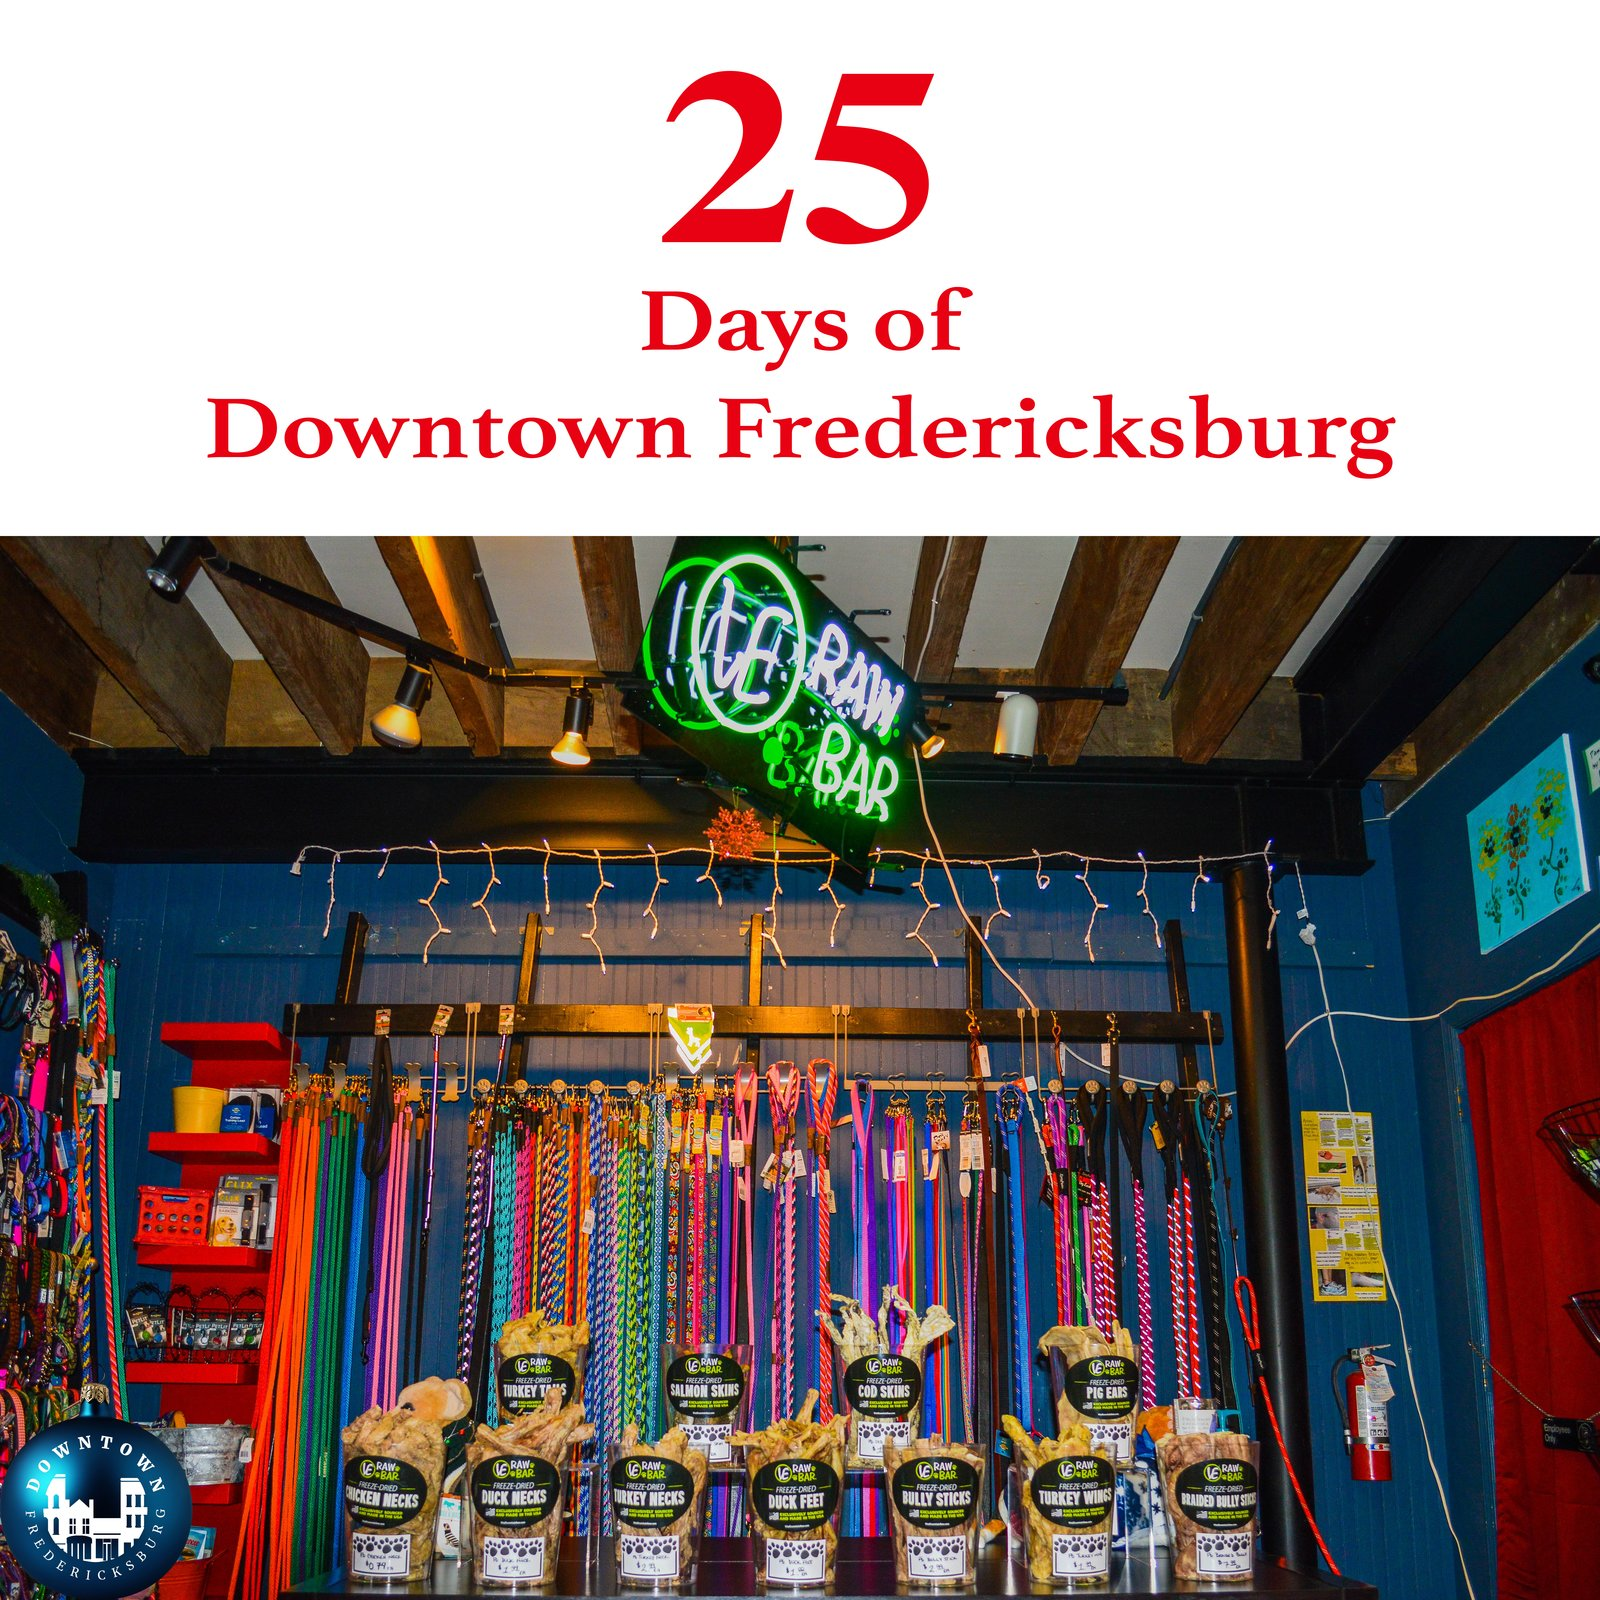 Gift Six Santa Paws is coming to town, and he's stopping by Dog Krazy for your furry friends. www.facebook.com/DowntownFredericksburg  25 Days of Downtown Fredericksburg